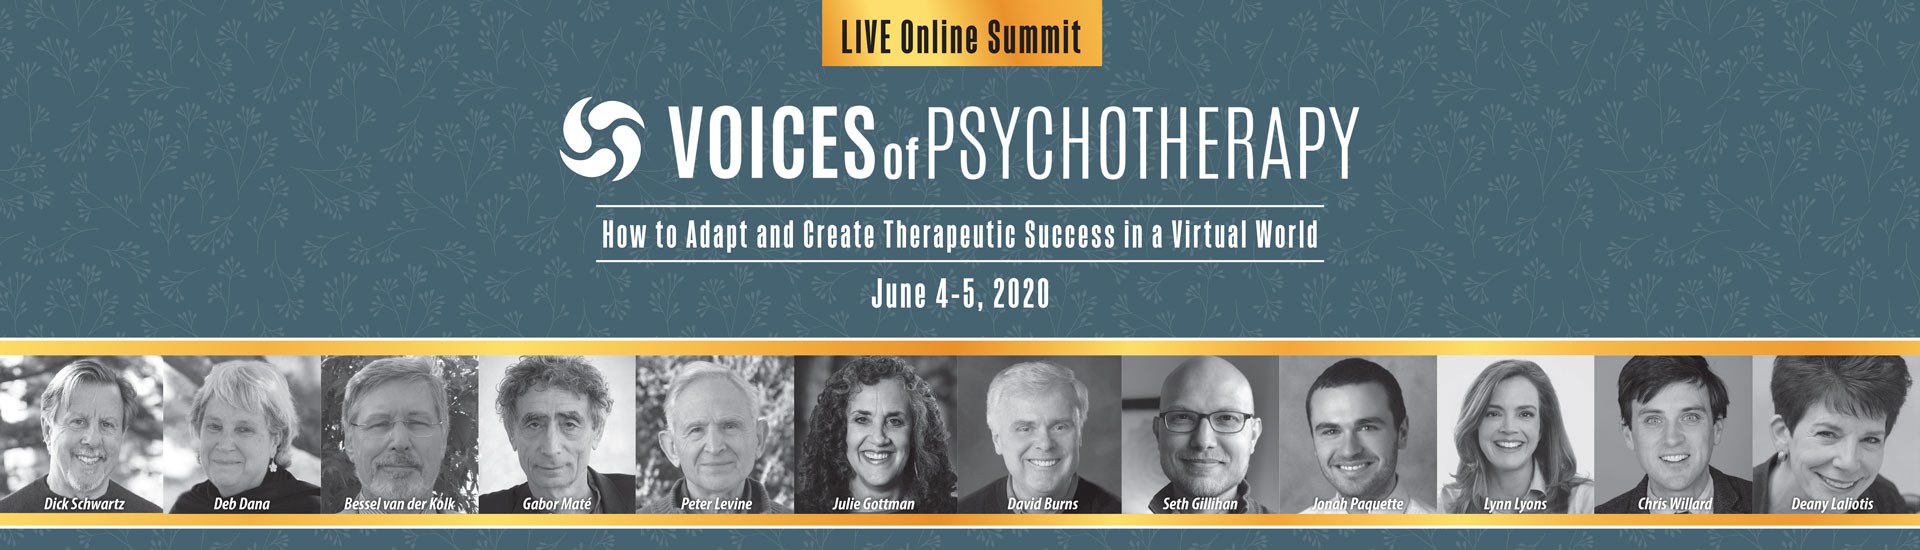 Voices of Psychotherapy